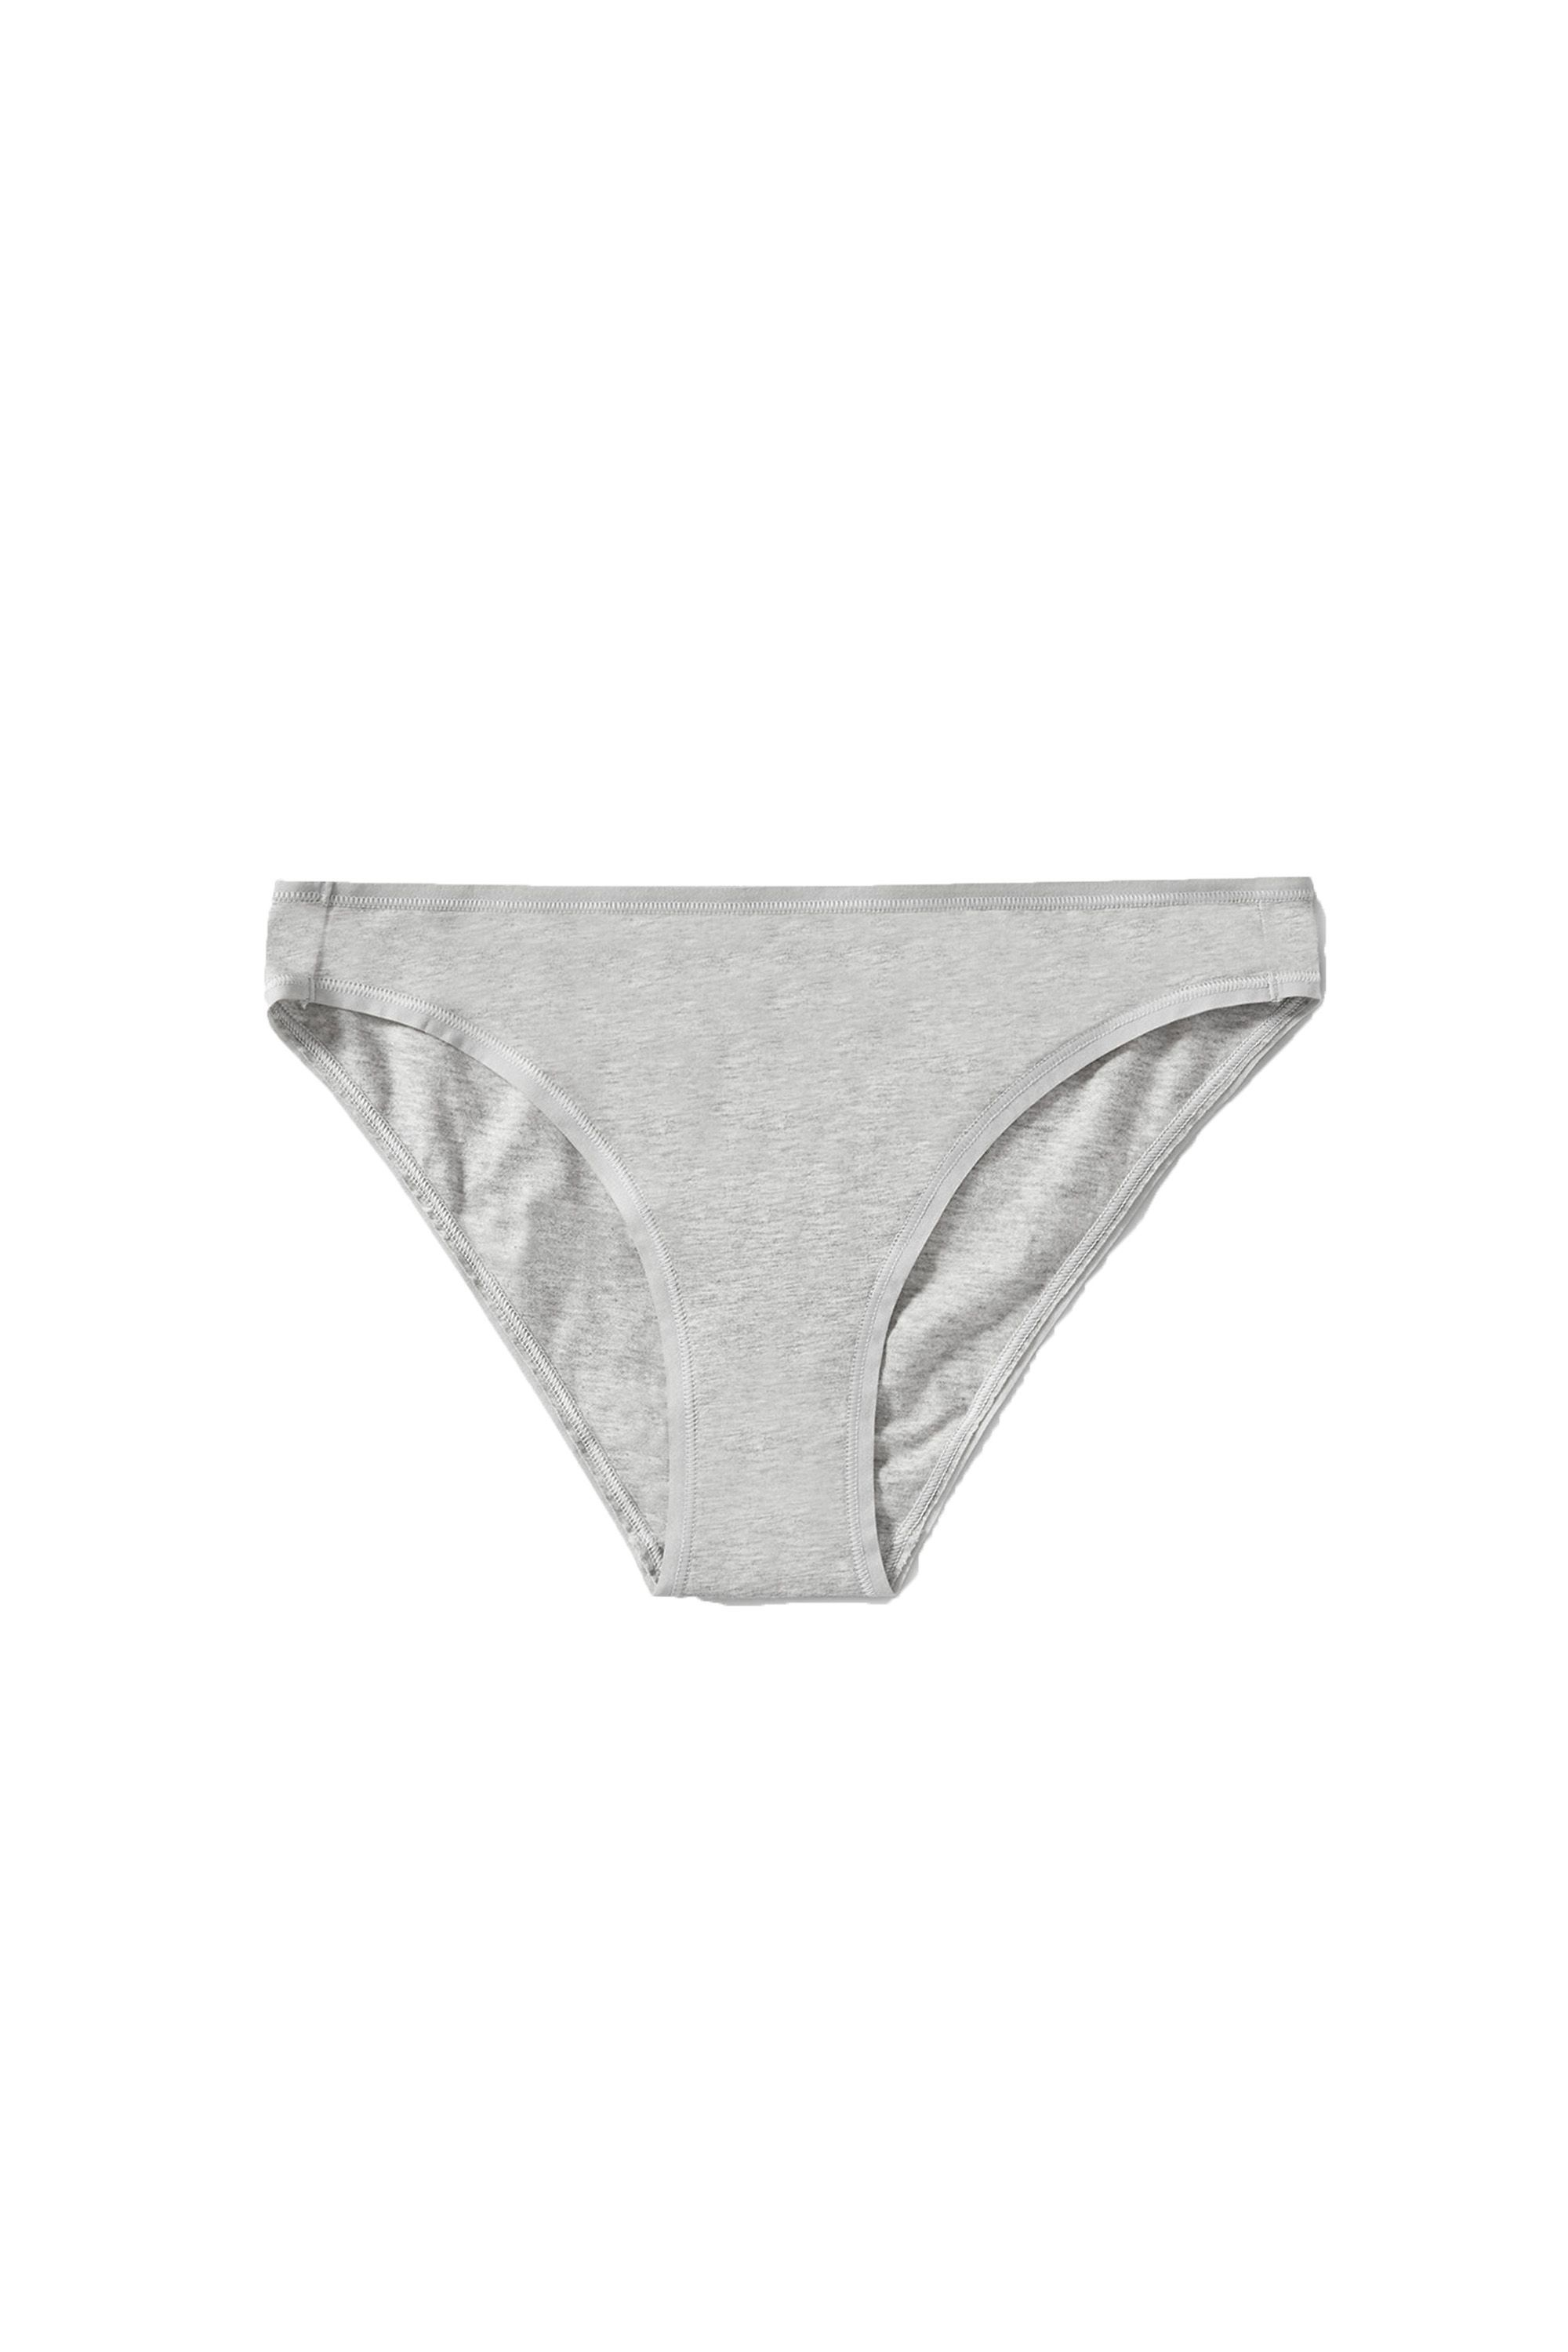 75d1a84c984706 Best Underwear for Women - 10 Briefs, Bikinis &Thongs for All Occasions